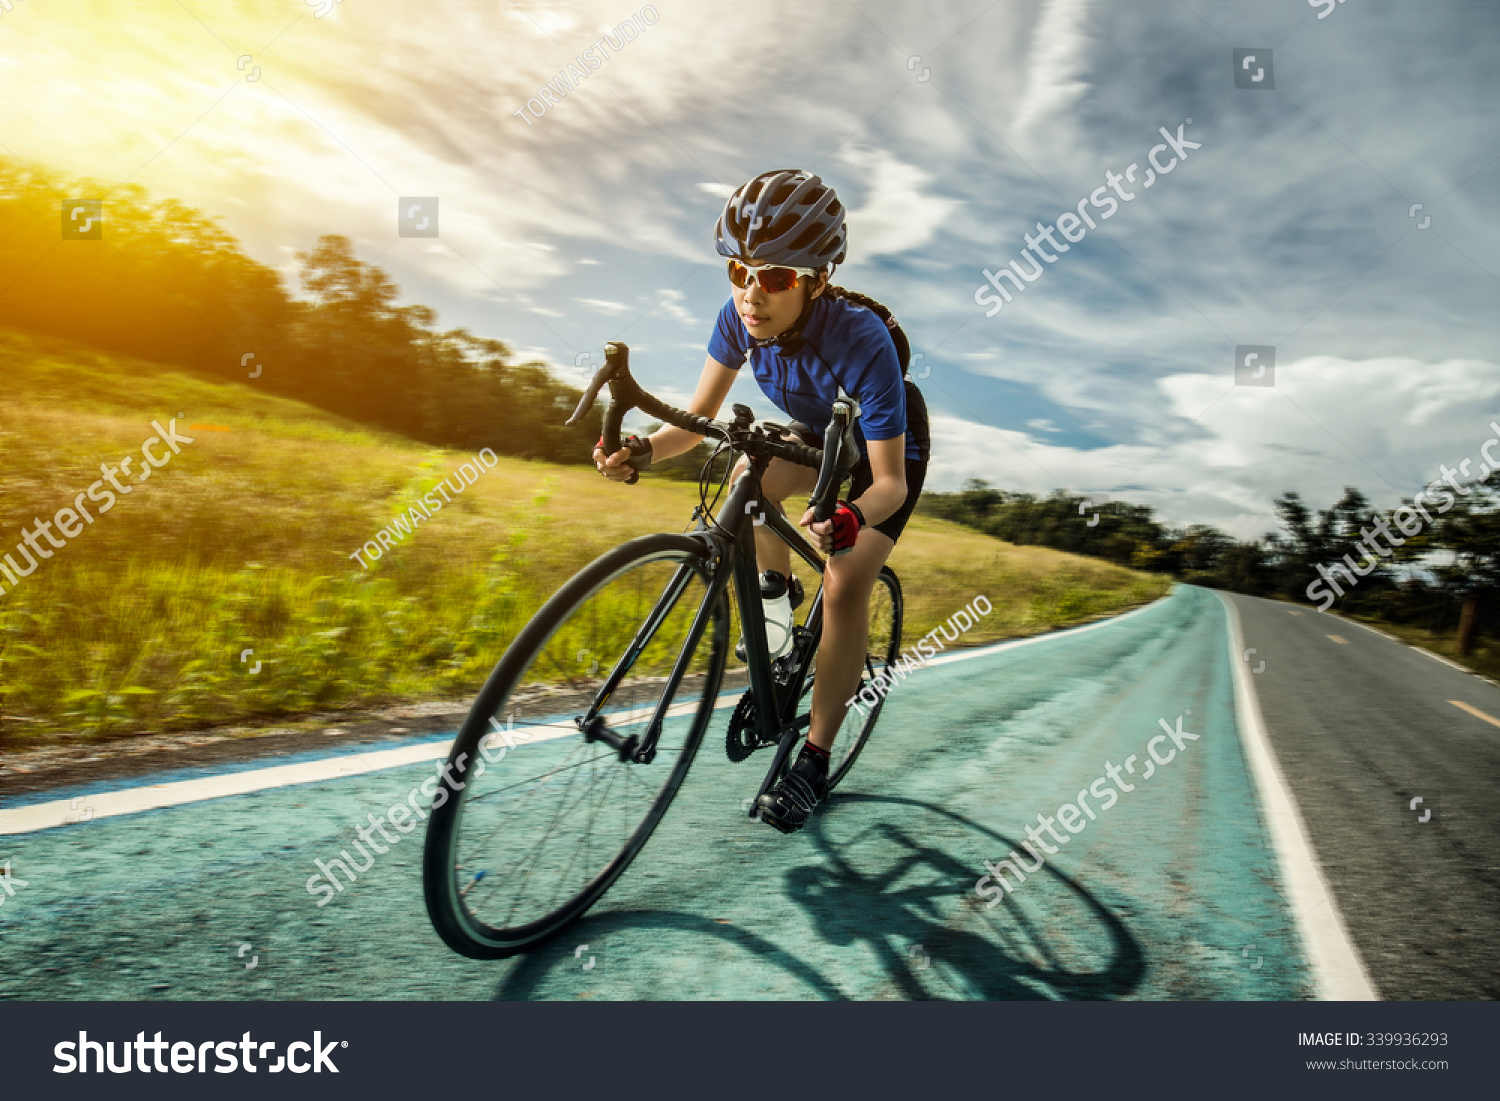 Woman Cycling Outdoor Exercise Bike Paths Stock Photo